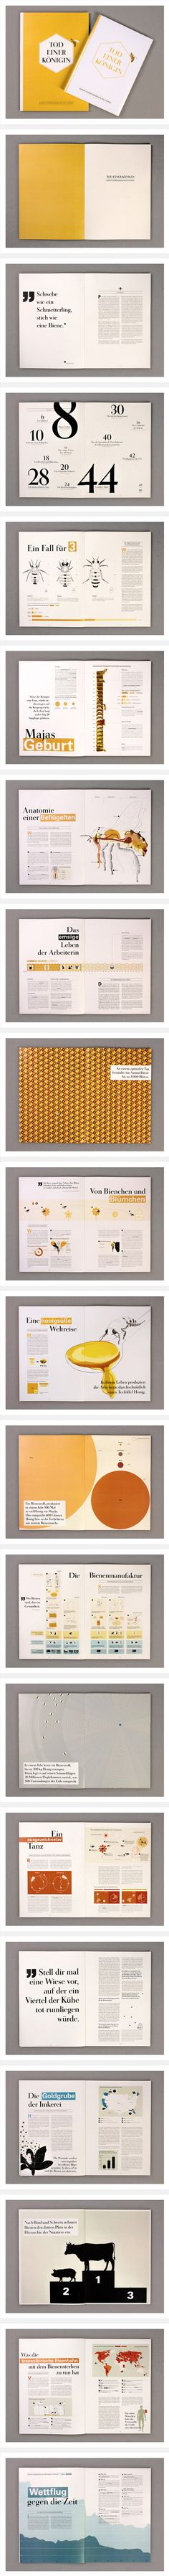 Good inspiration for the annual report project.  Information is displayed in different ways while keeping the whole cohesive.